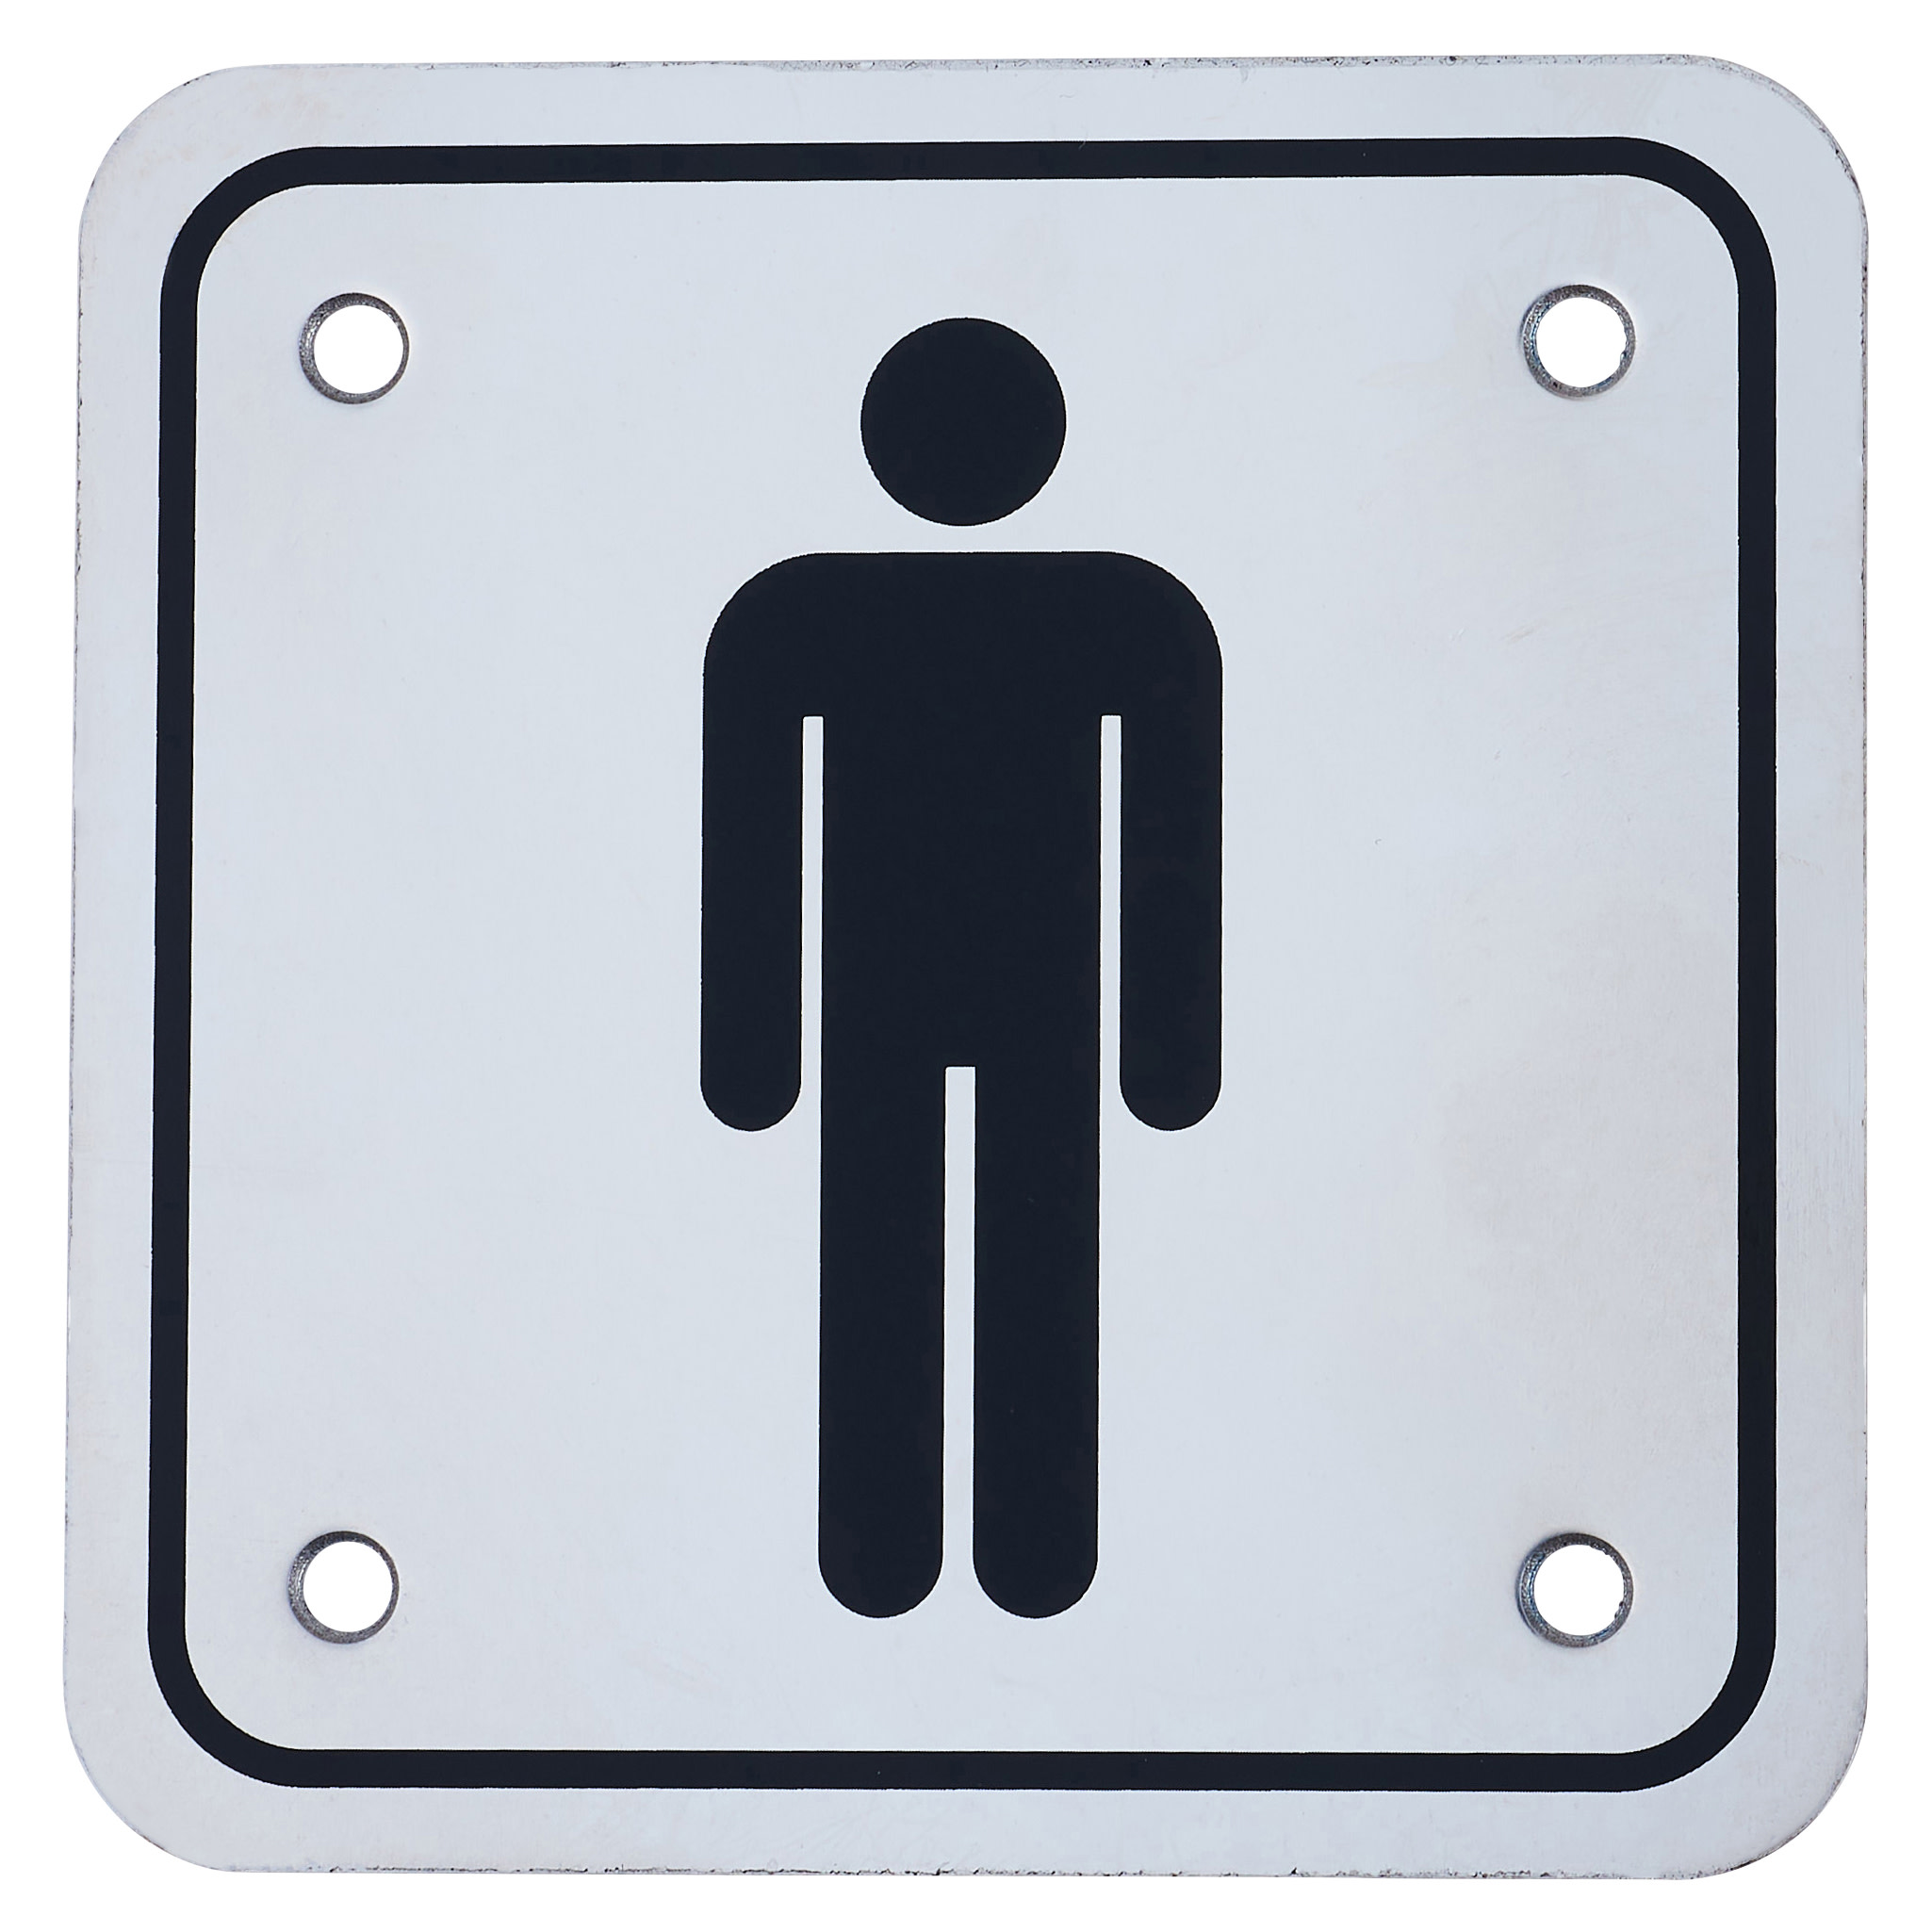 Mens Square Toilet Door Sign - 100 x 100mm - Polished Stainless)